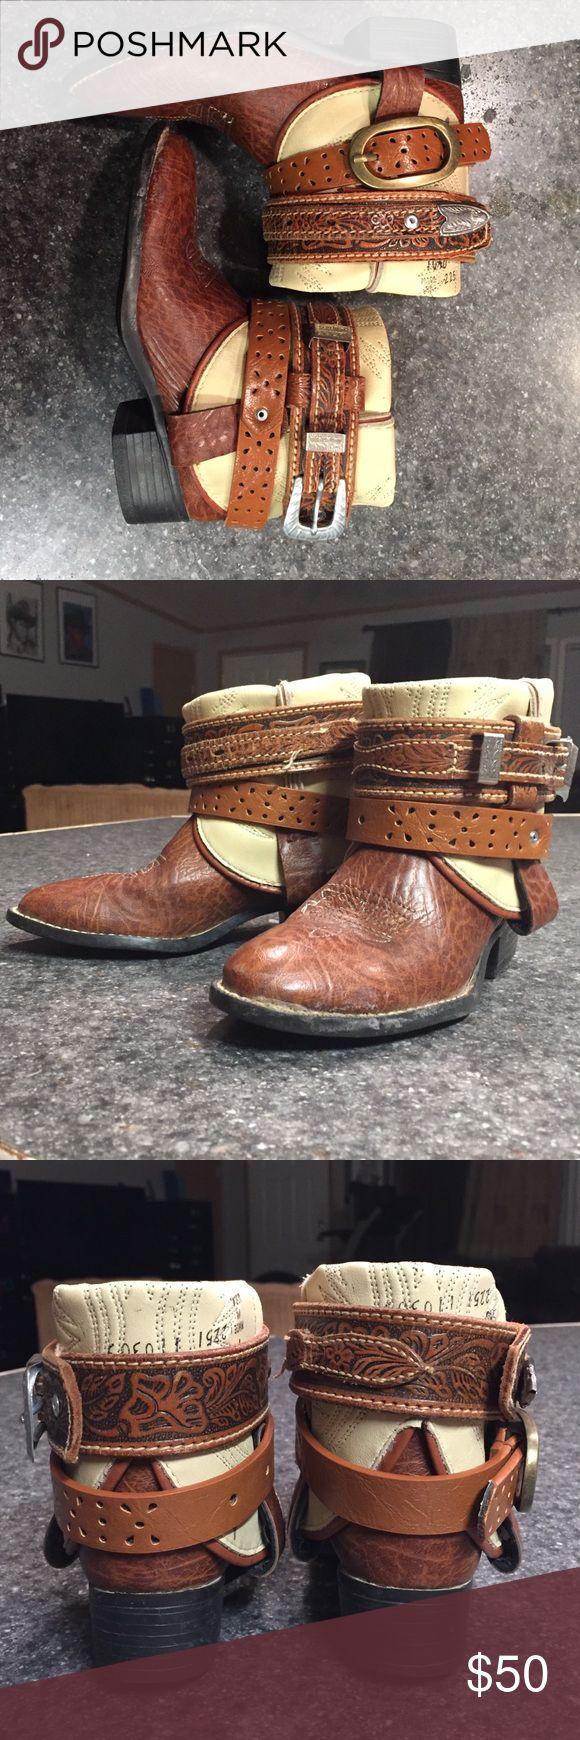 """Kid's size 10.5 refashioned Laredo cowboy boots Got a Lil cowgirl who likes to look sharp while getting the job done? These are the """"Lash LaRue Buckaroo"""" boots...size 10.5 perfect for a 4-6 year old. These a NEW Laredo leather cowboy boots with a makeover using tooled leather and vintage belts. Get them in time for Christmas!!! Laredo Shoes Boots"""